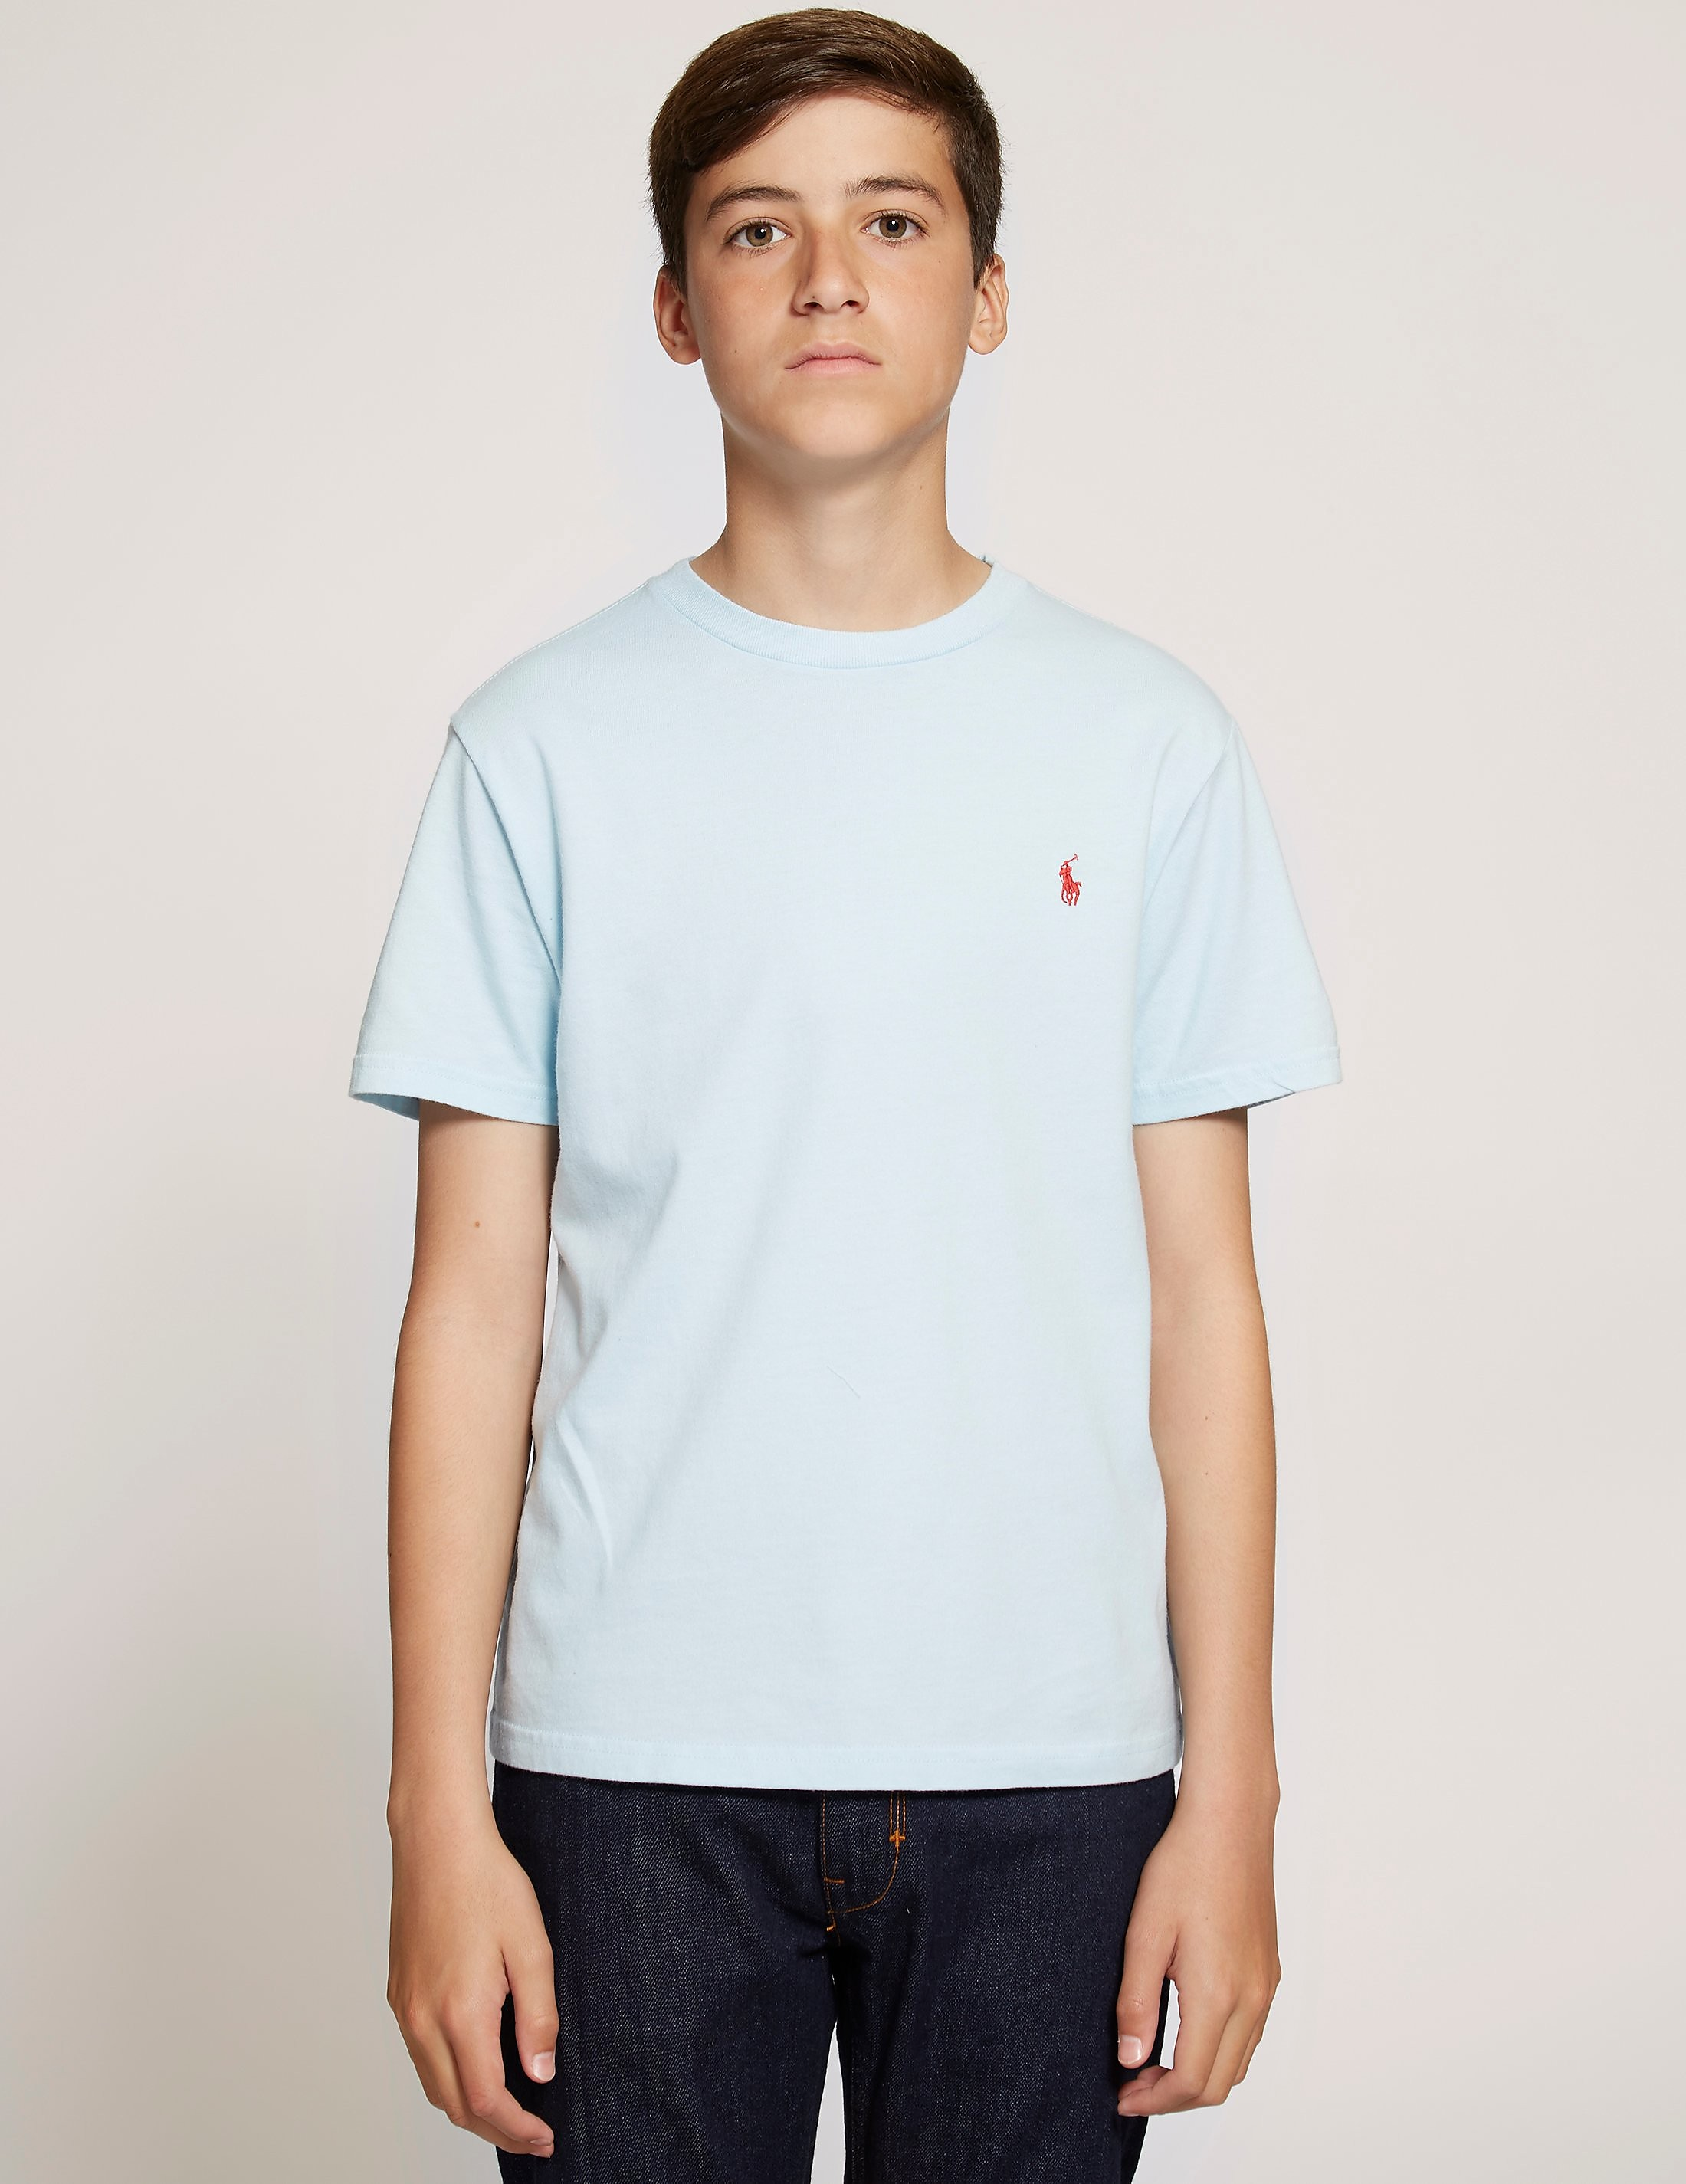 Polo Ralph Lauren Cotton Jersey Crew Short Sleeve T-Shirt